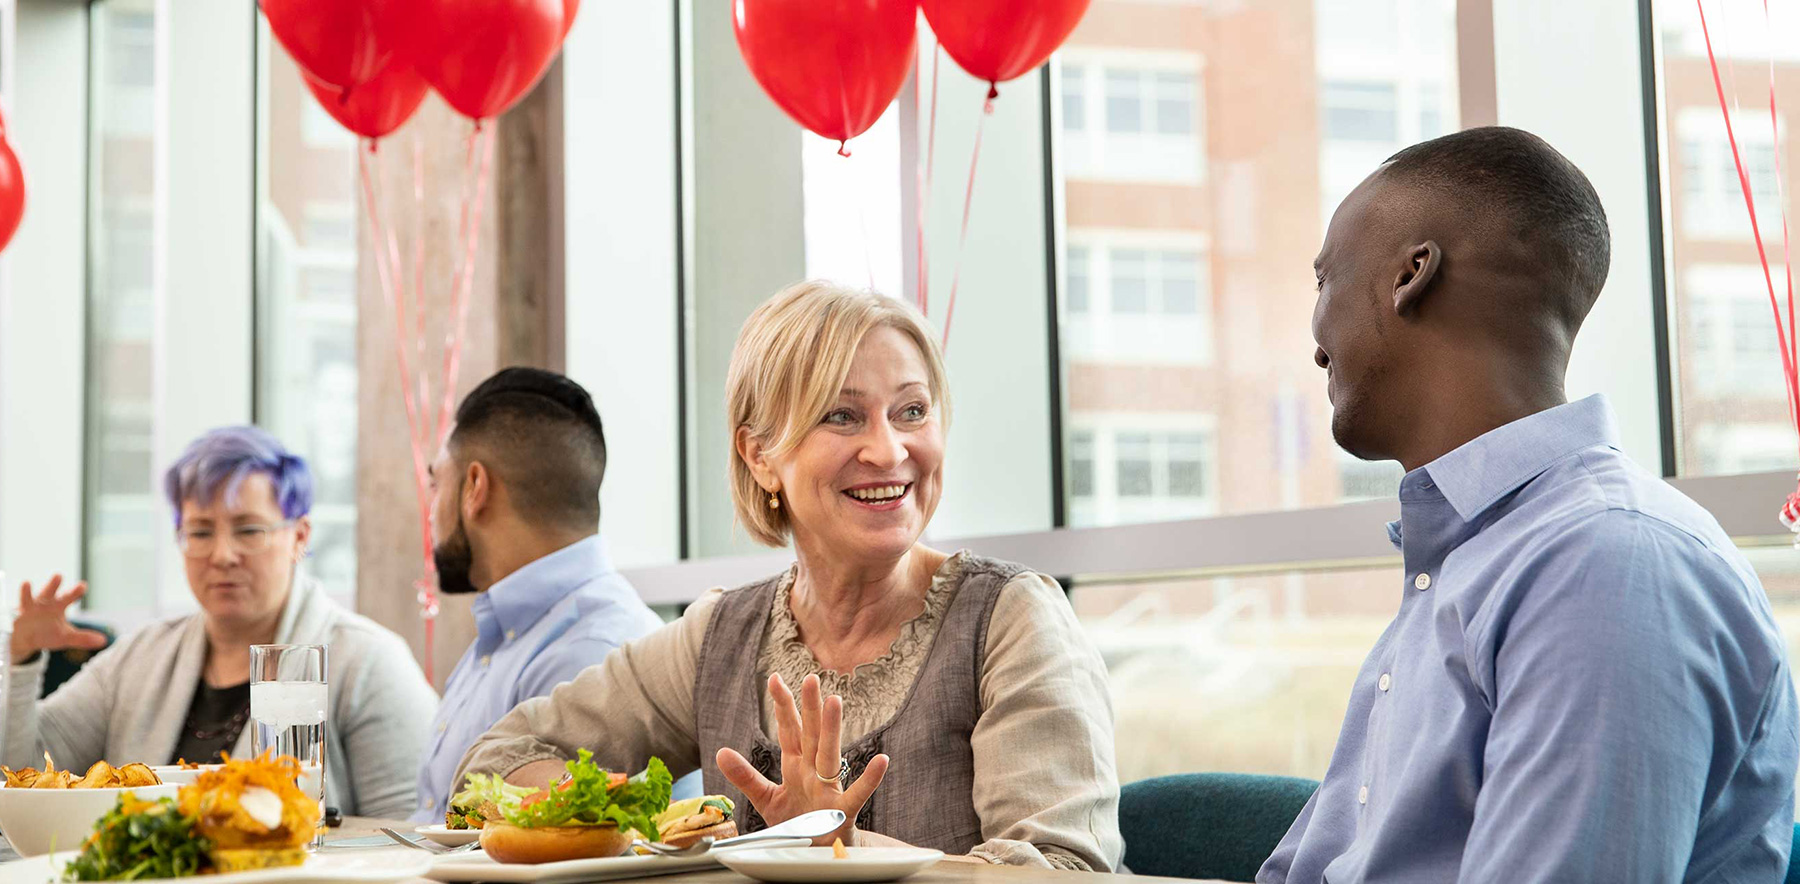 people talking at the table of a team building lunch with red balloons